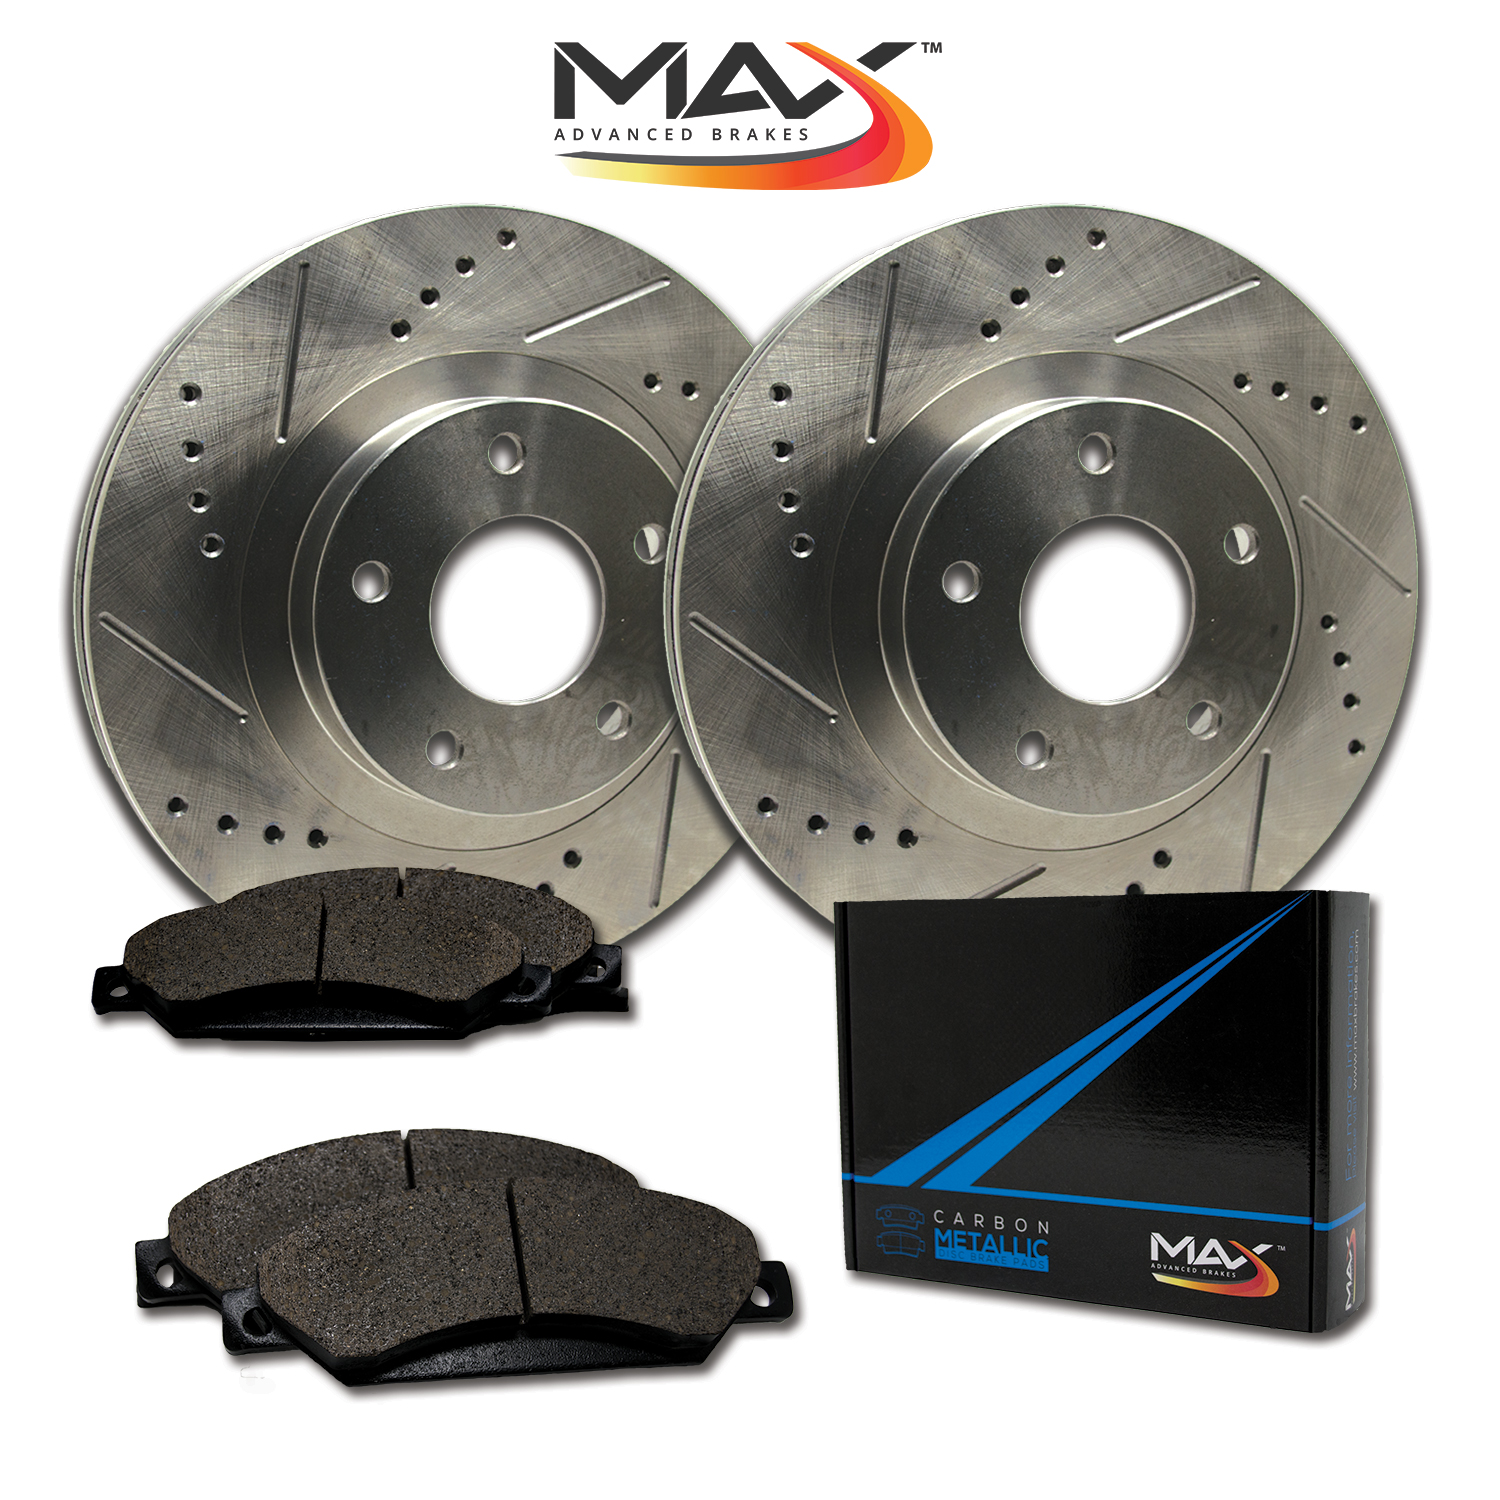 Rear-Rotors-w-Metallic-Pad-Premium-Brakes-2004-2008-TSX-03-07-Accord